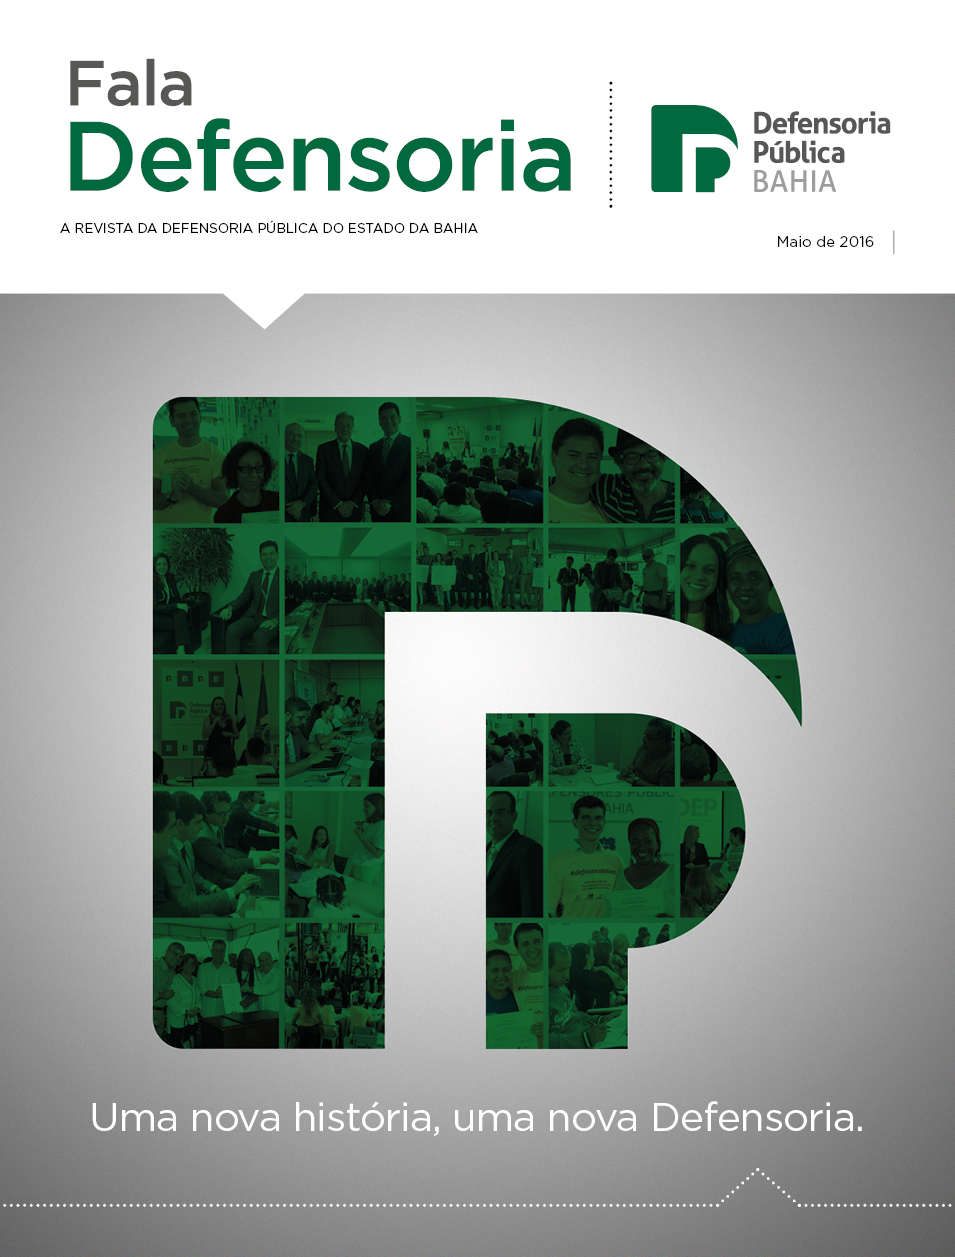 Revista Fala Defensoria 2016